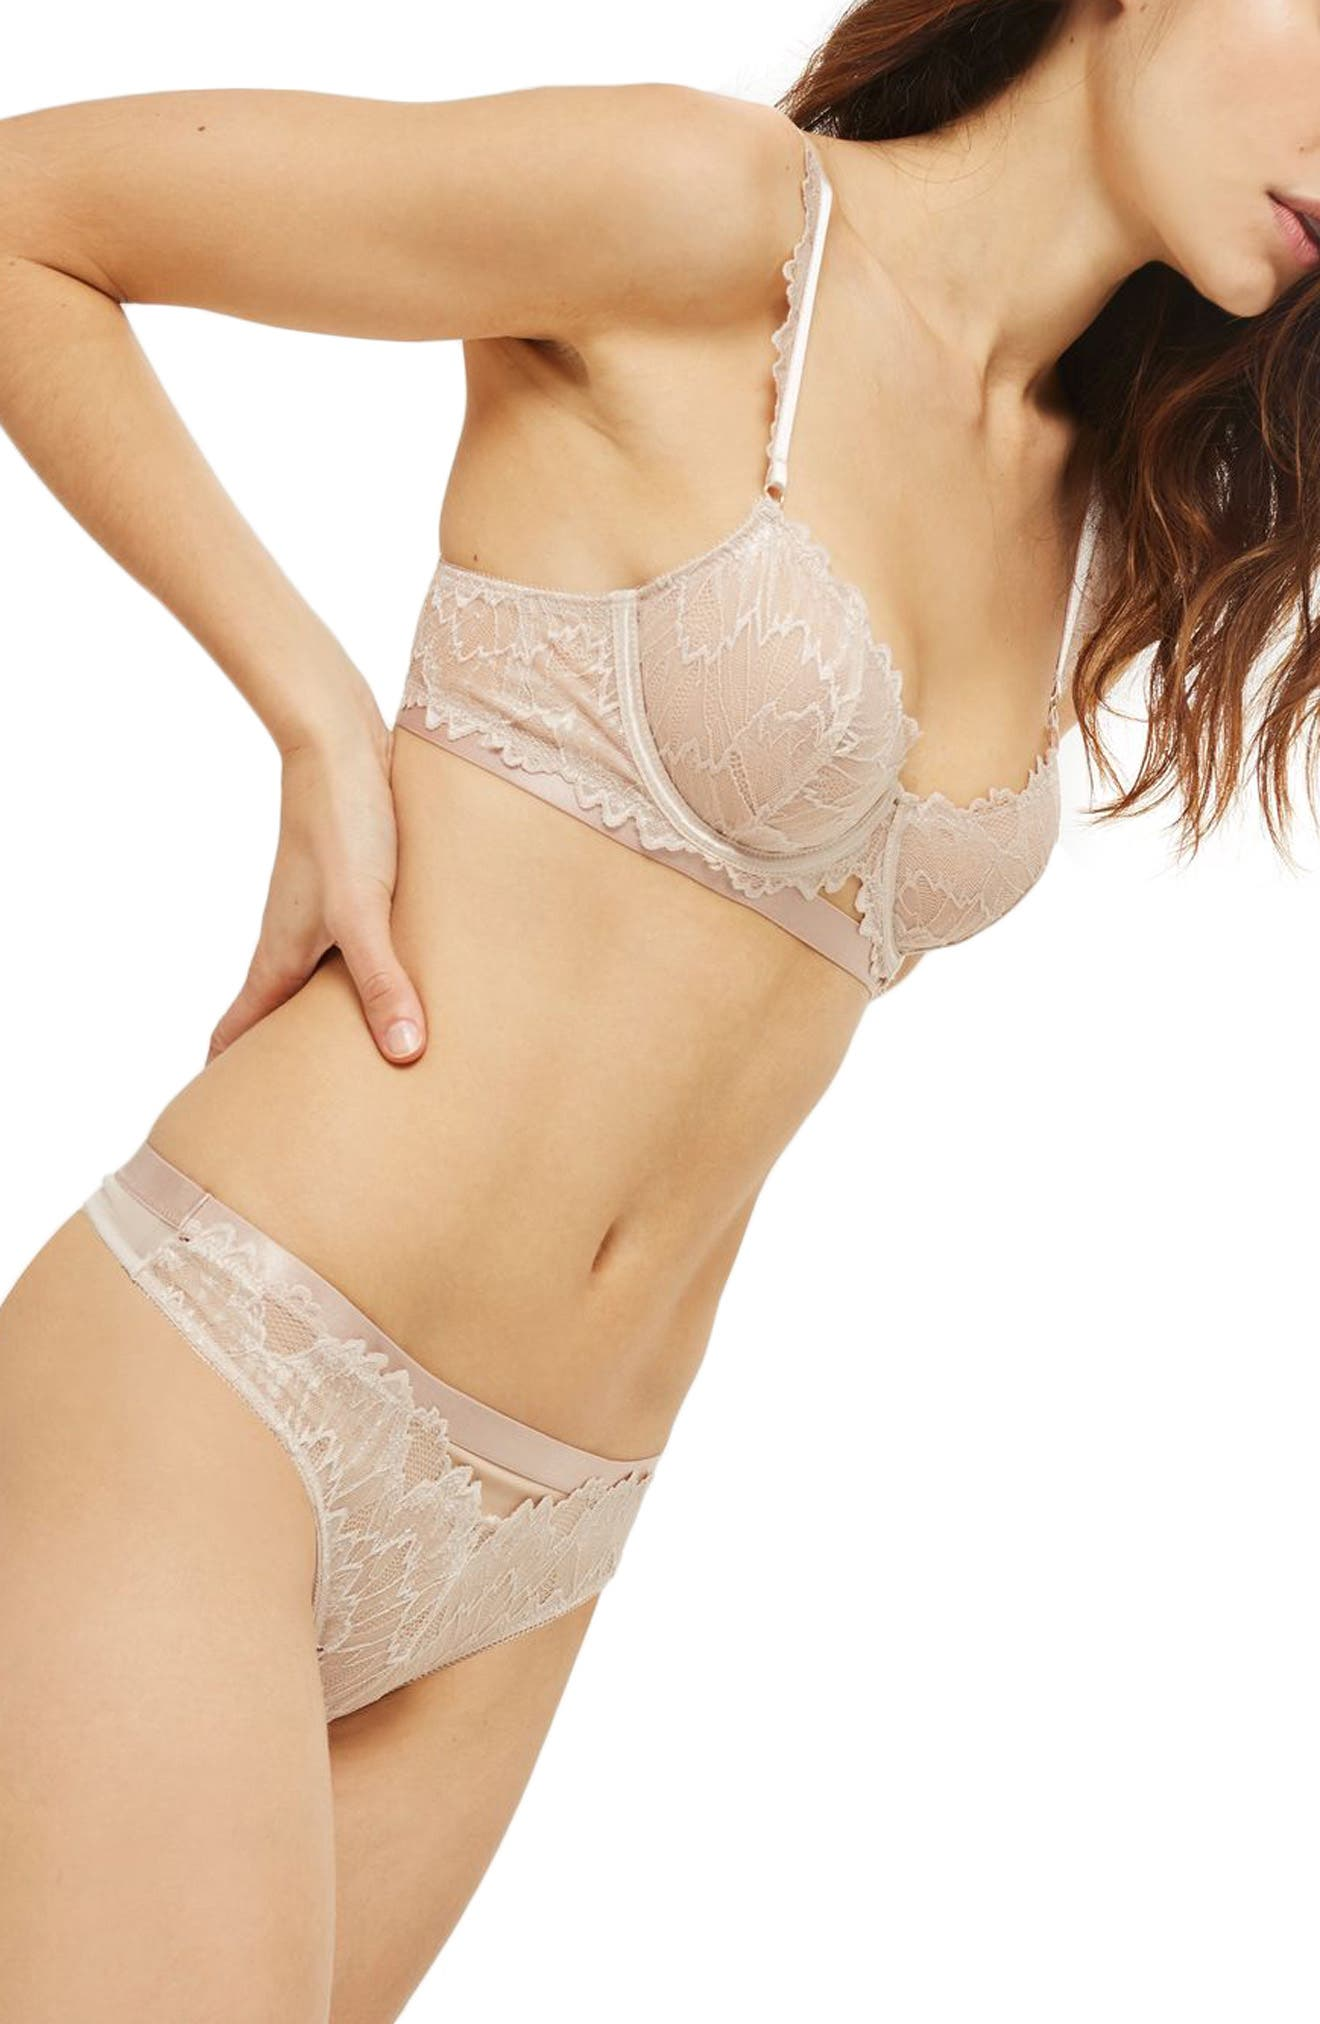 Verena Lace Thong,                             Alternate thumbnail 4, color,                             Cream